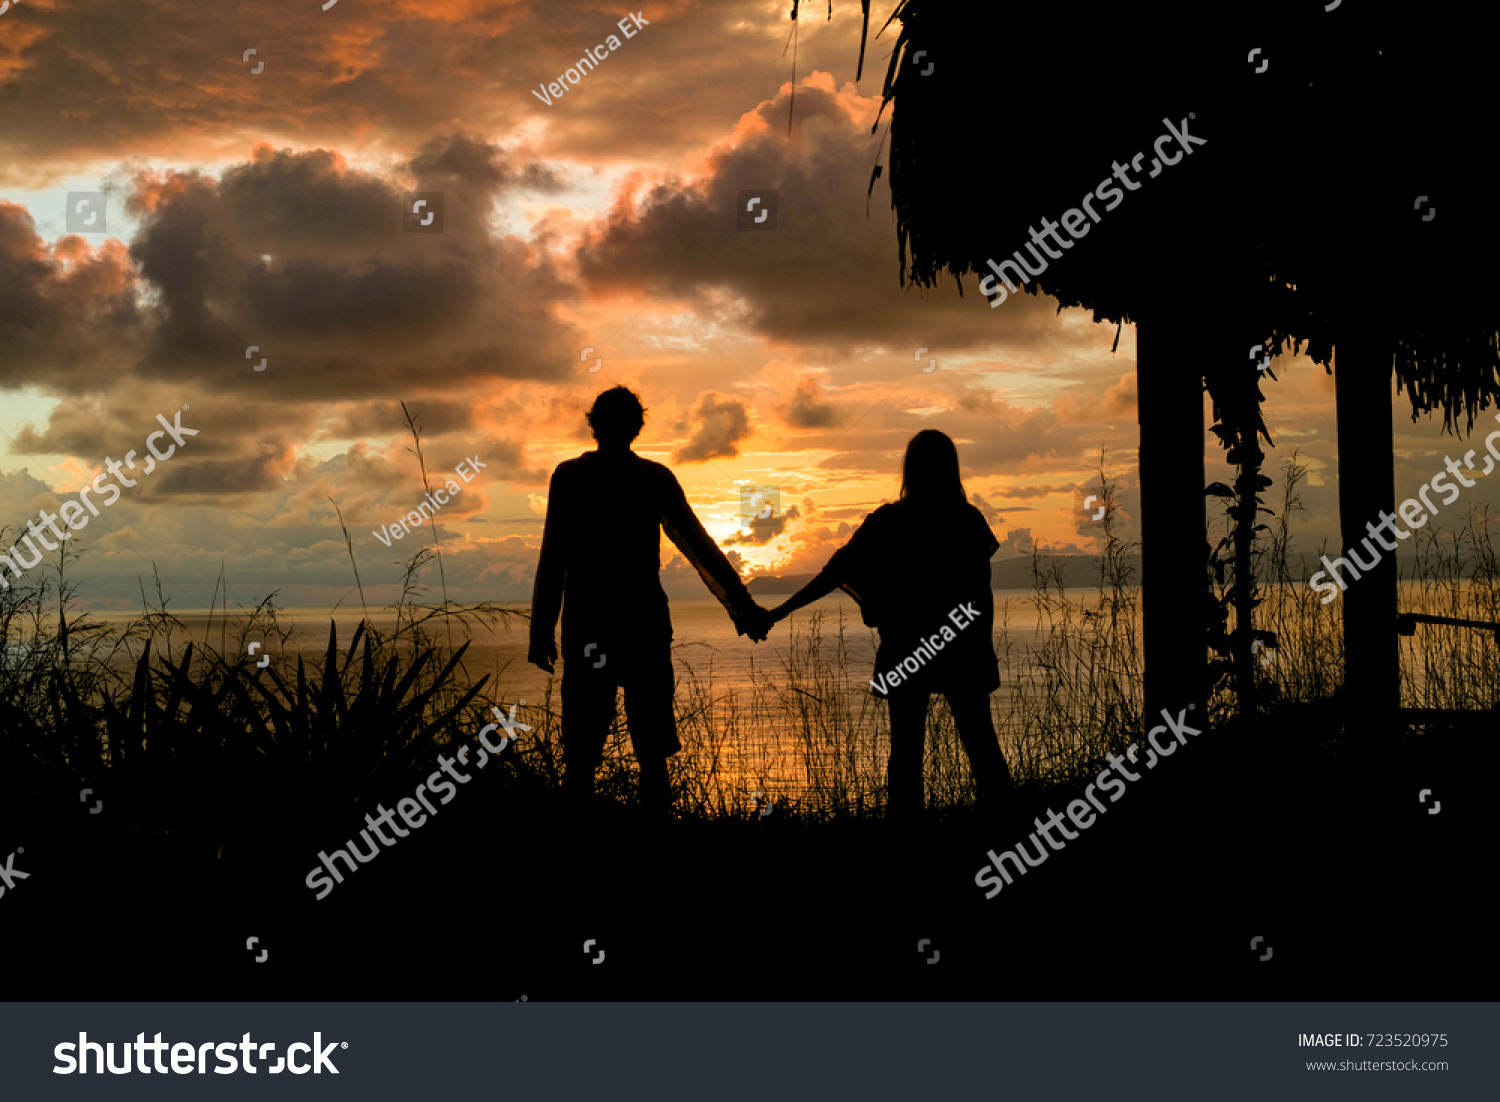 Silhouette Couple Holding Hands Sunset Stock Photo 723520975 ... for Couple Holding Hands Silhouette Sunset  183qdu